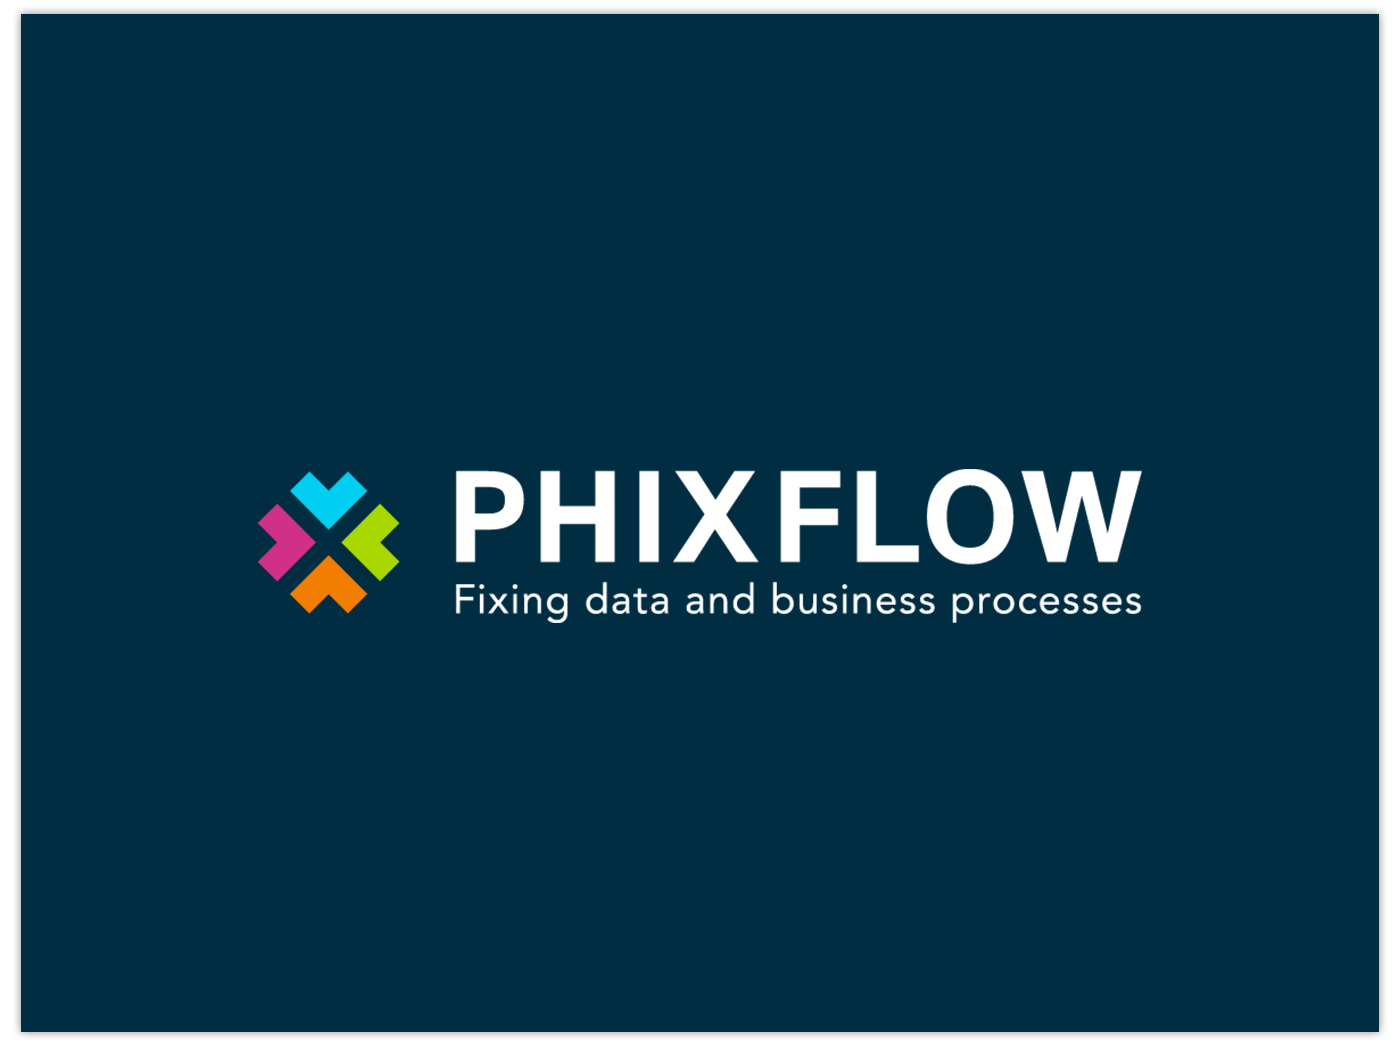 Phixflow brand refinement, by Chiara Mensa for Onespacemedia